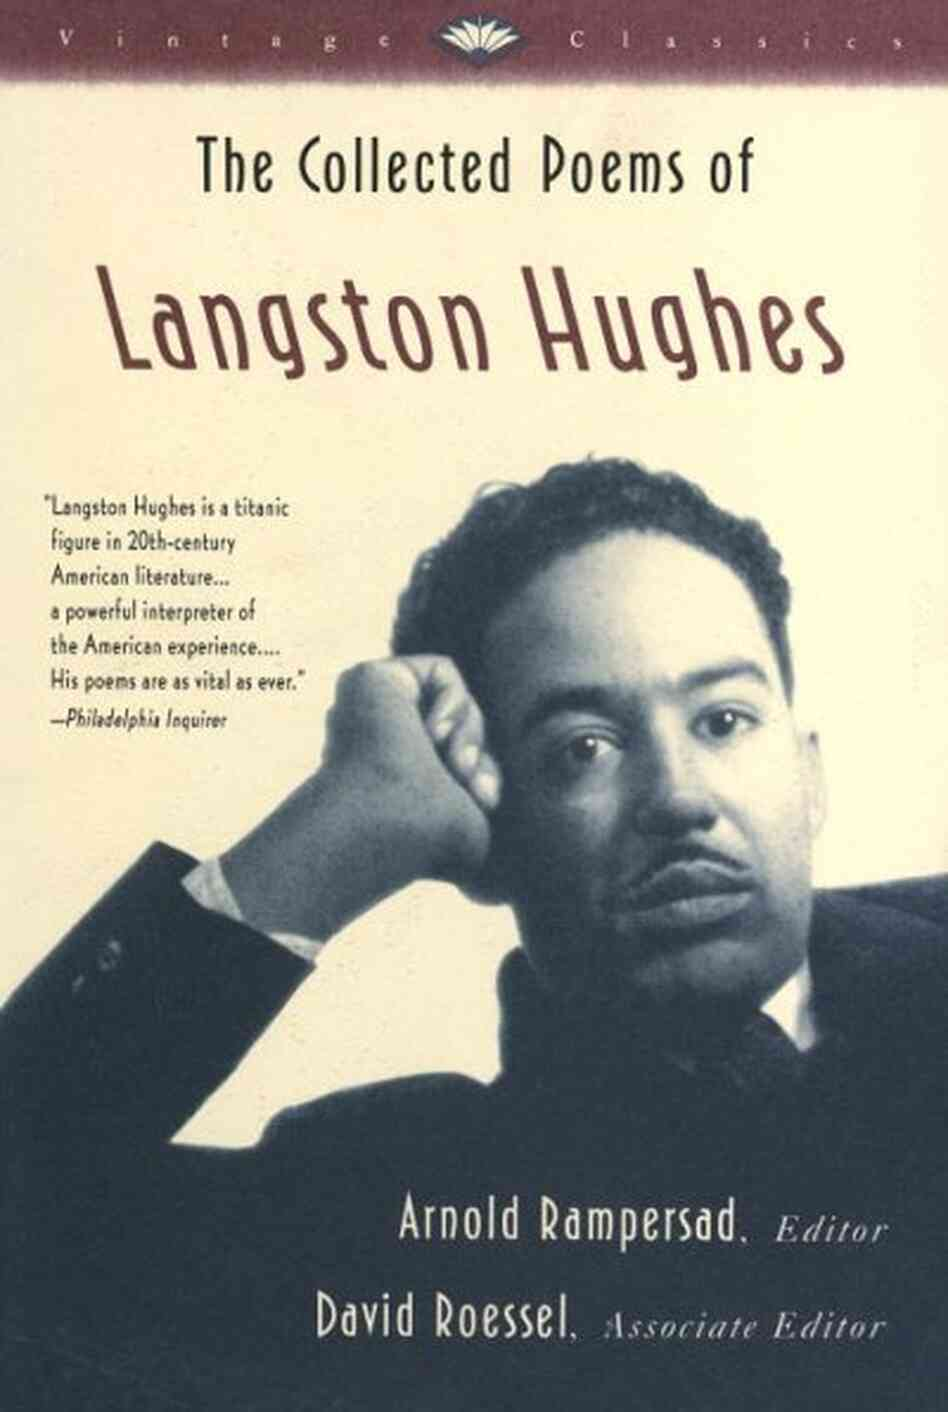 Mother To Son - Poem by Langston Hughes